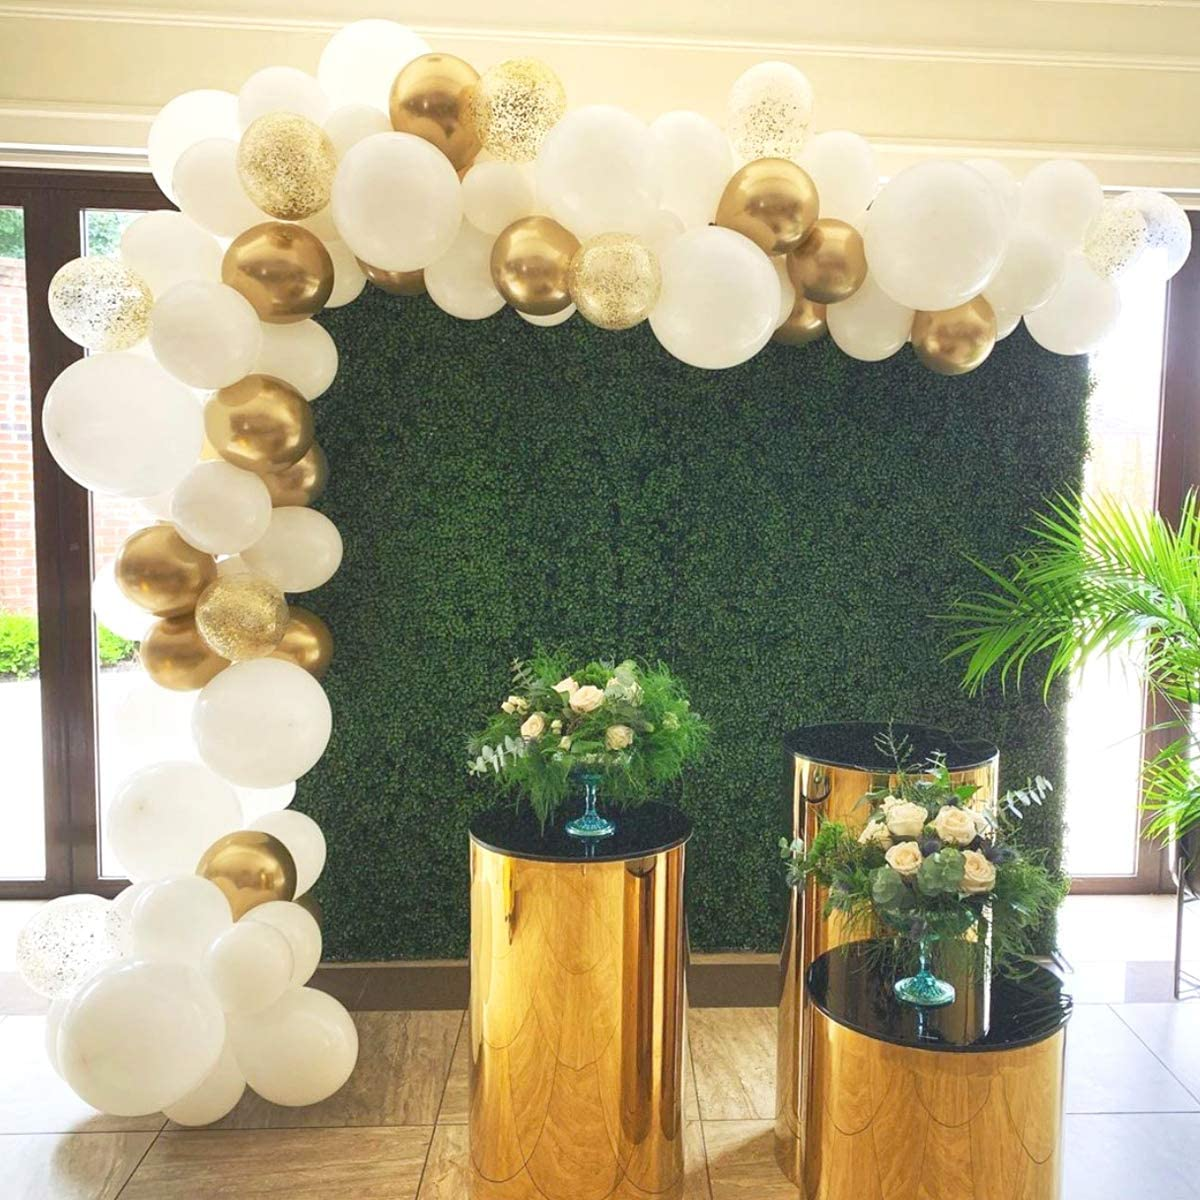 Wedding Birthday. 113 Pcs White Gold Confetti Balloon Garland Tropical Palm Leaves Greenery for Baby Shower Decorations Balloon Garland Arch Kit